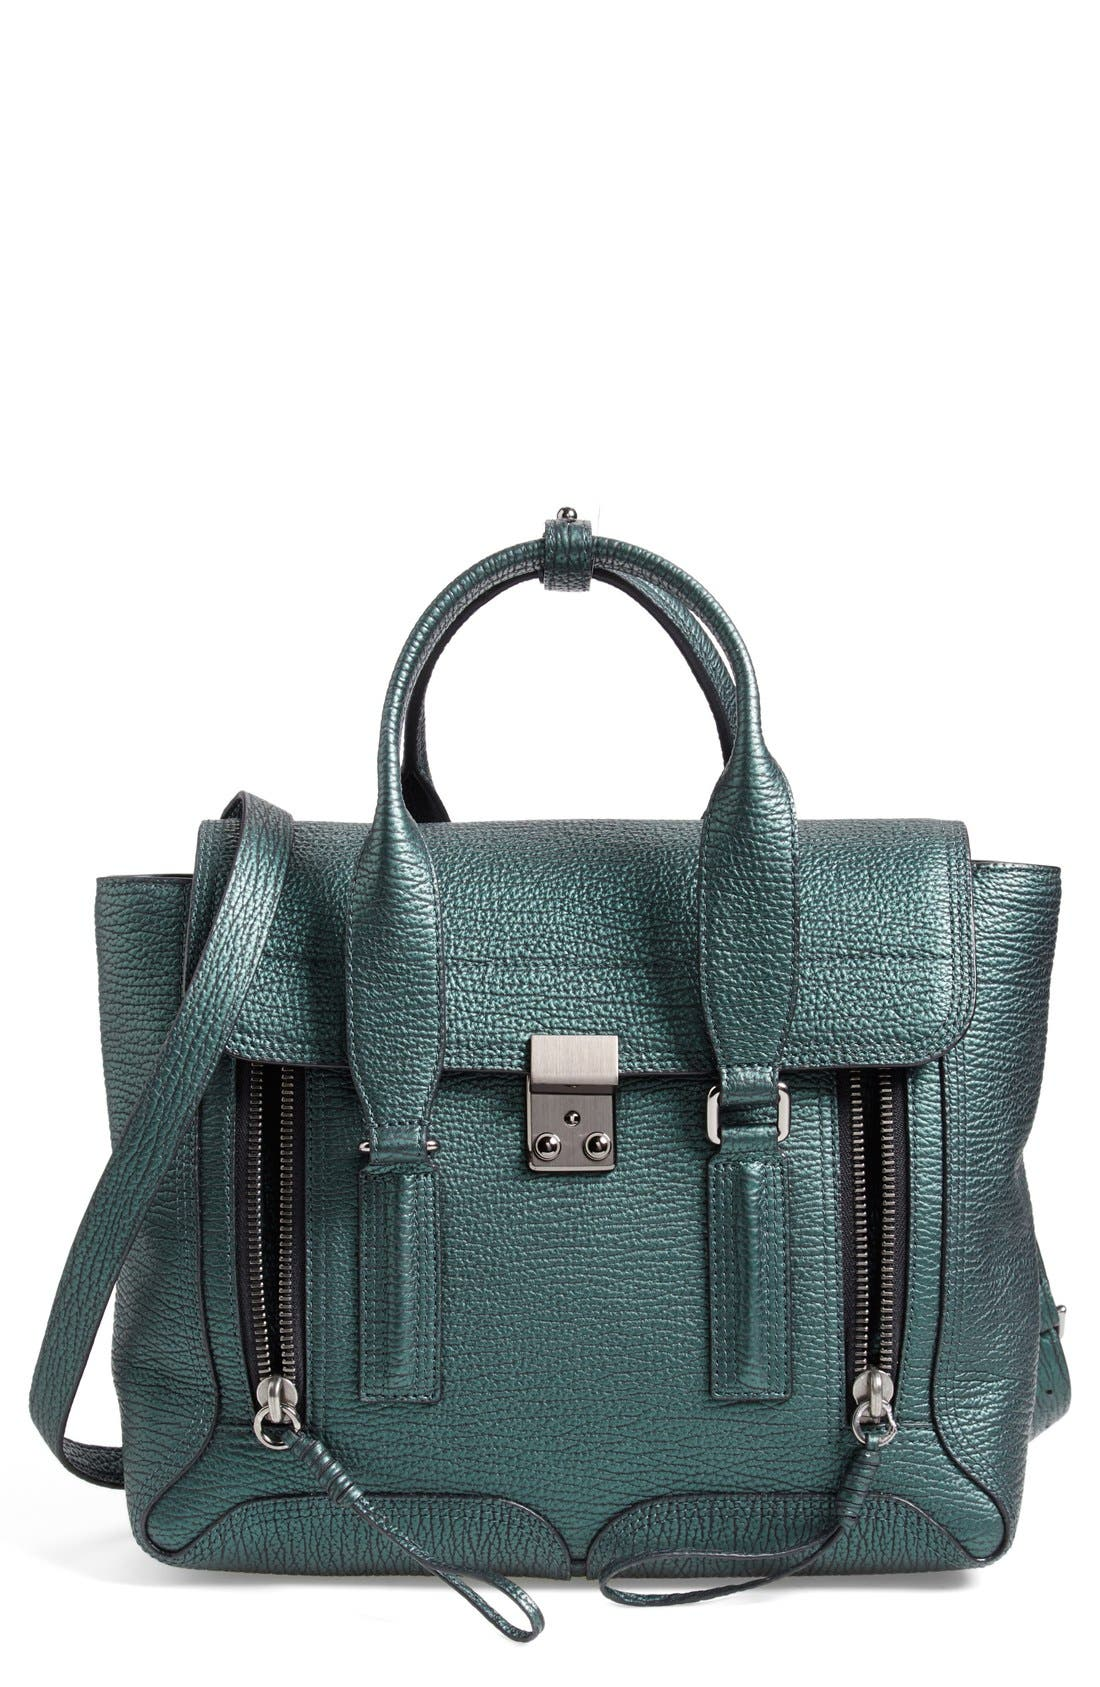 Alternate Image 1 Selected - 3.1 Phillip Lim 'Pashli Medium' Leather Satchel